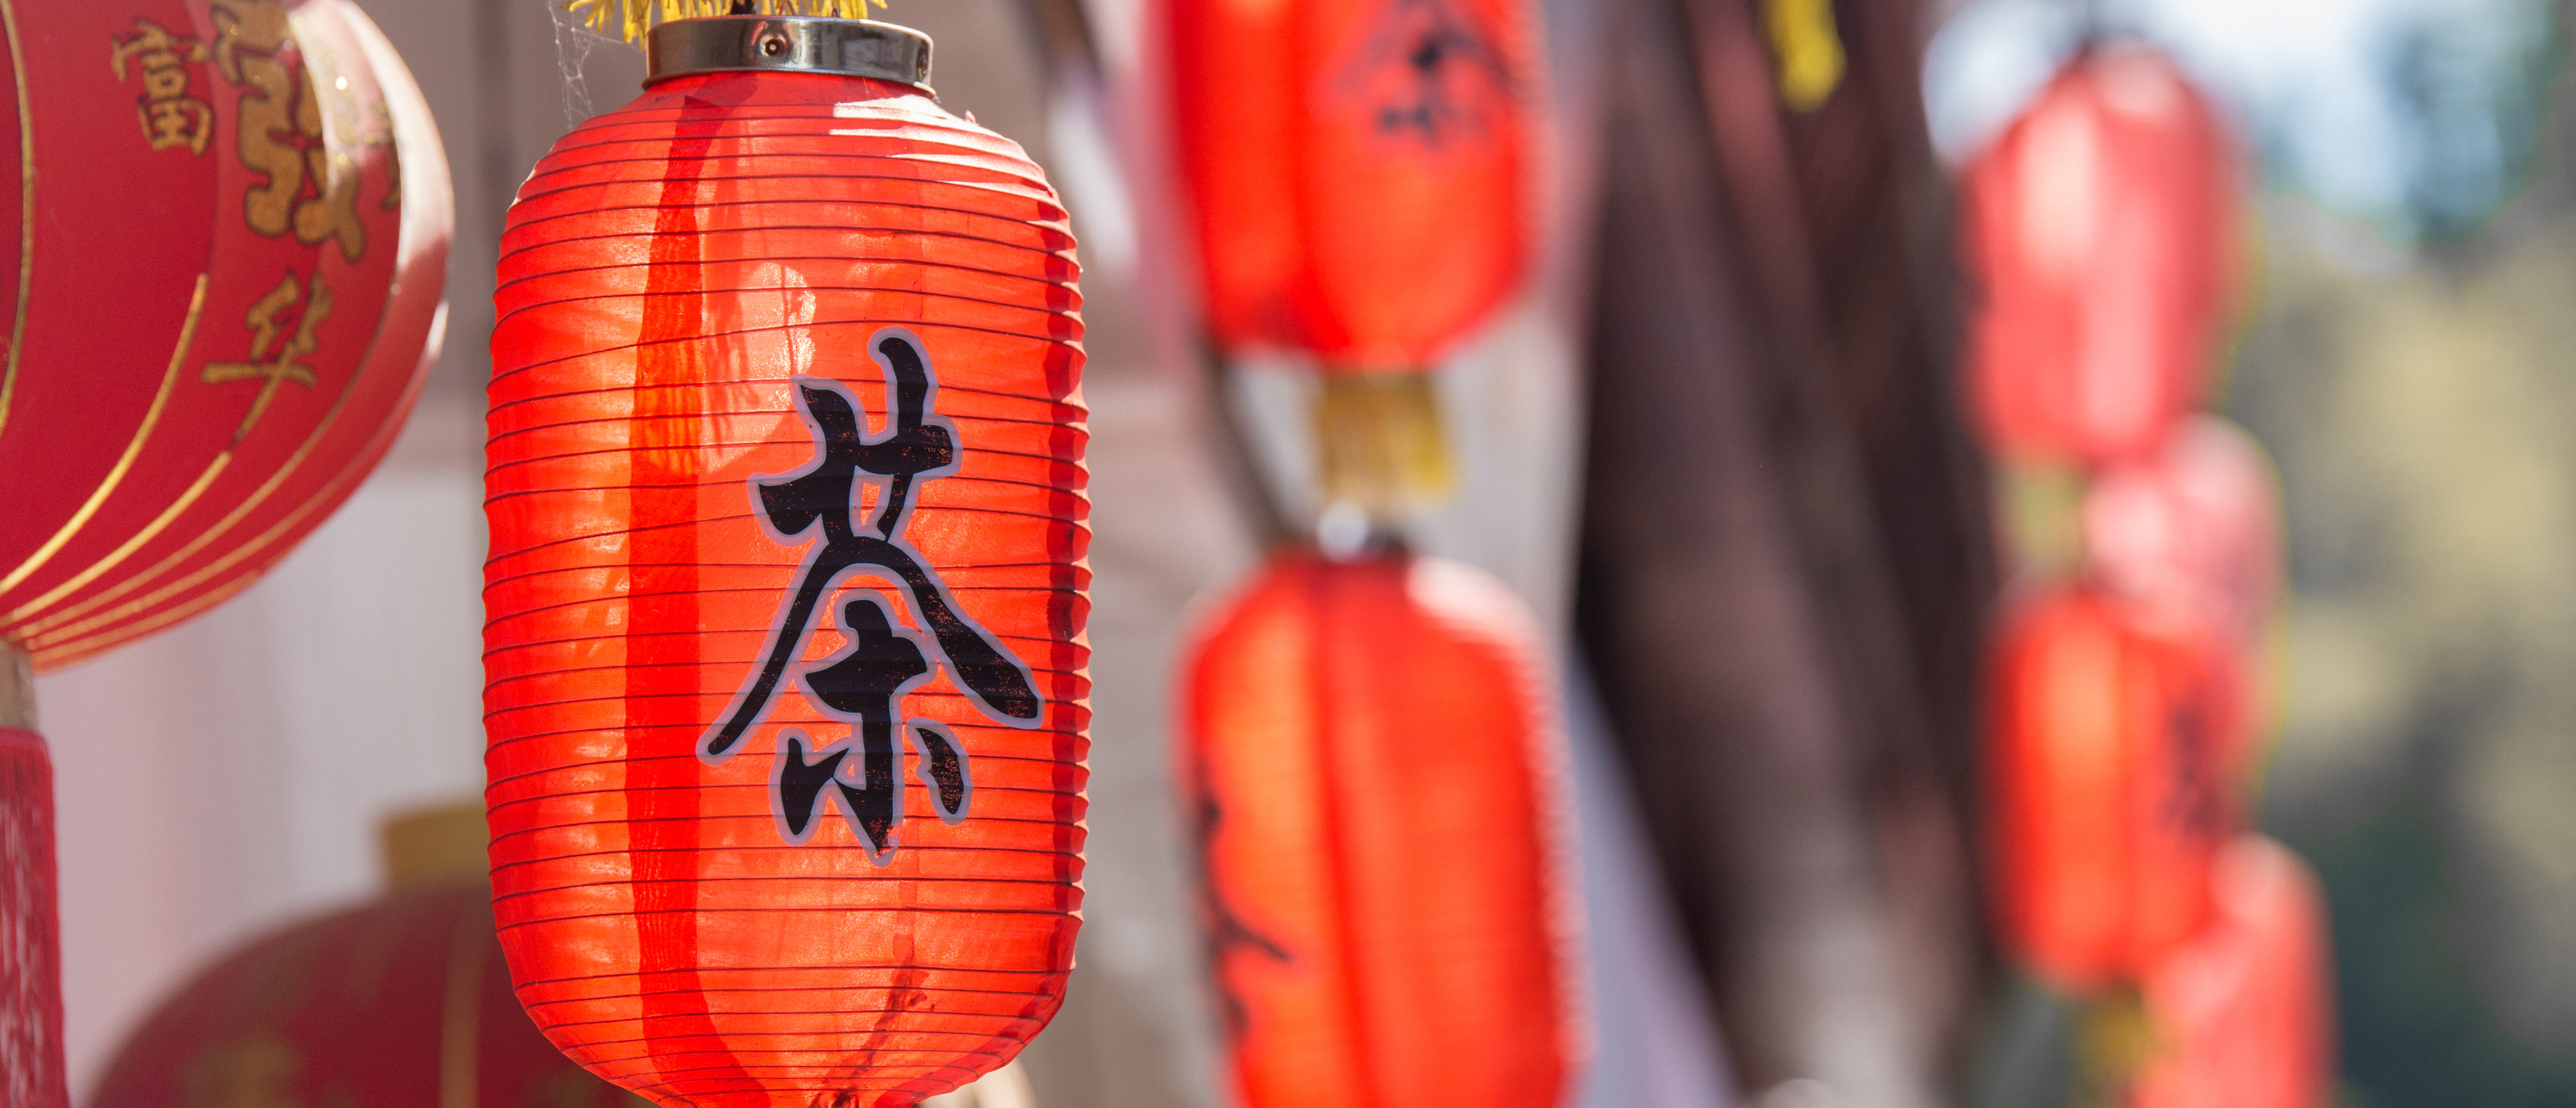 Red Chinese lanterns in an old village with the character for tea outside on a sunny day. Shutterstock